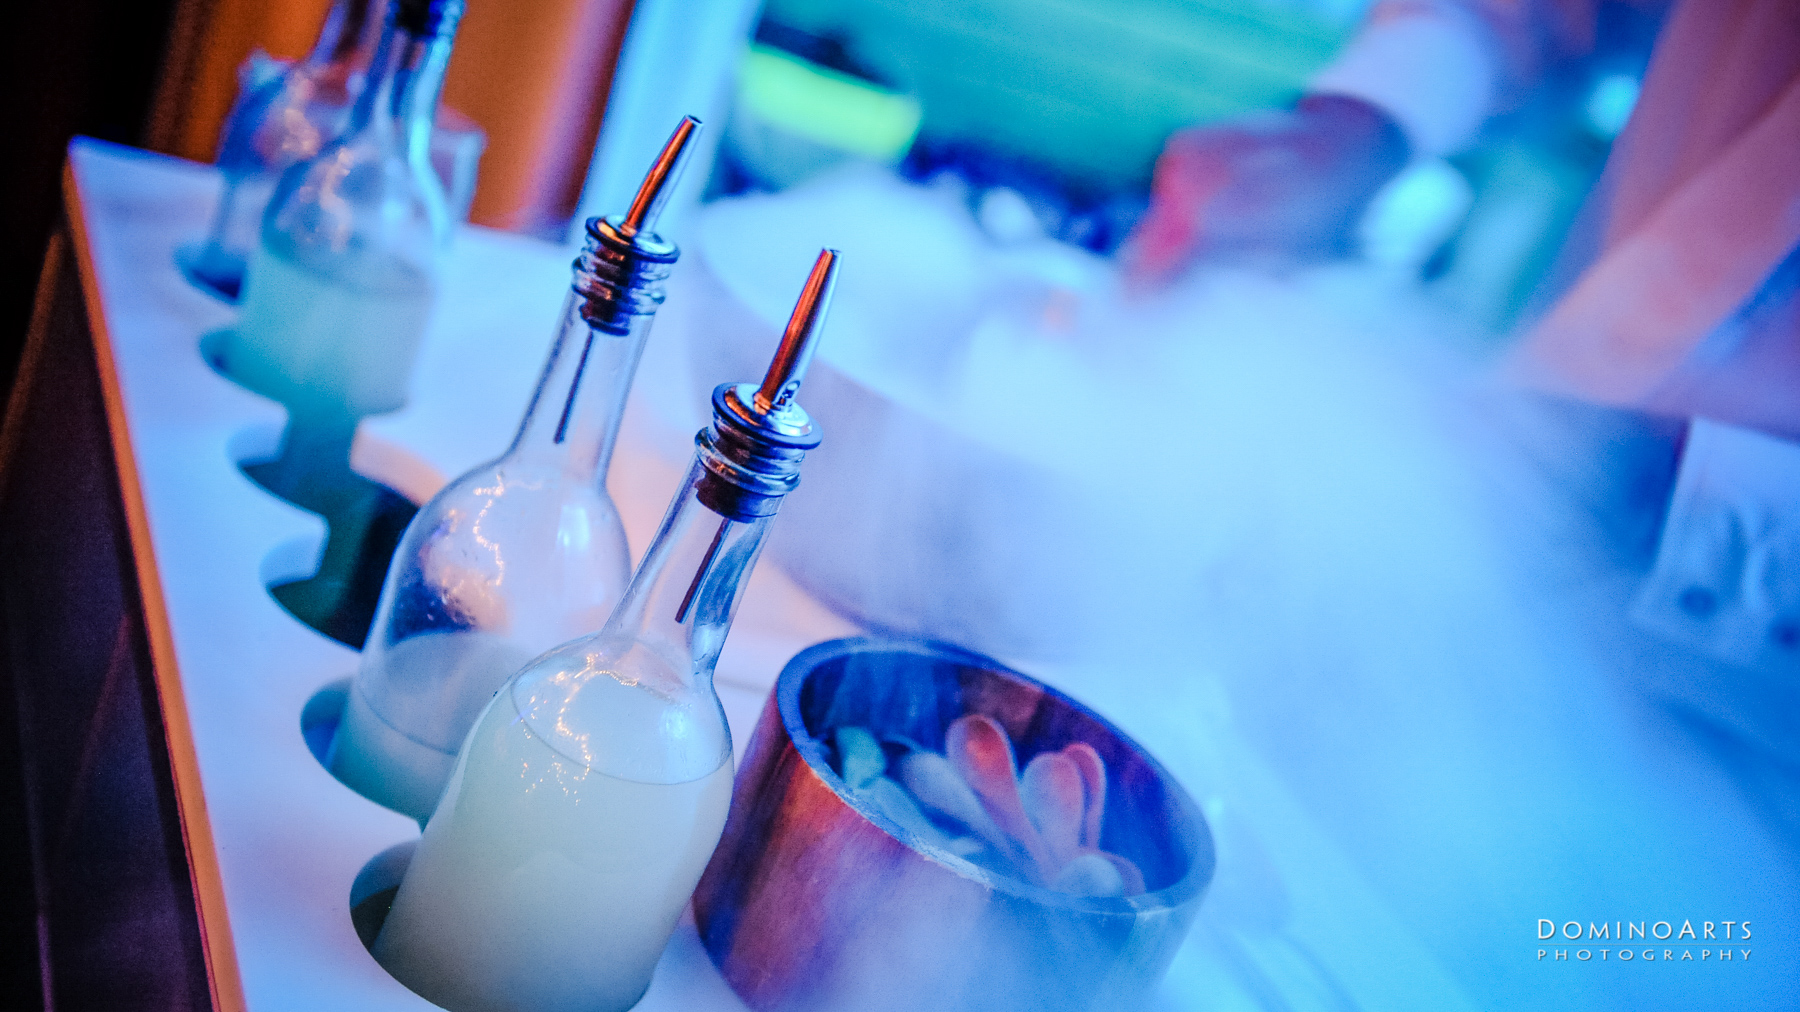 nitrogen ice cream and catering at Corporate Event at SLS South Beach, Miami by Domino Arts Photography